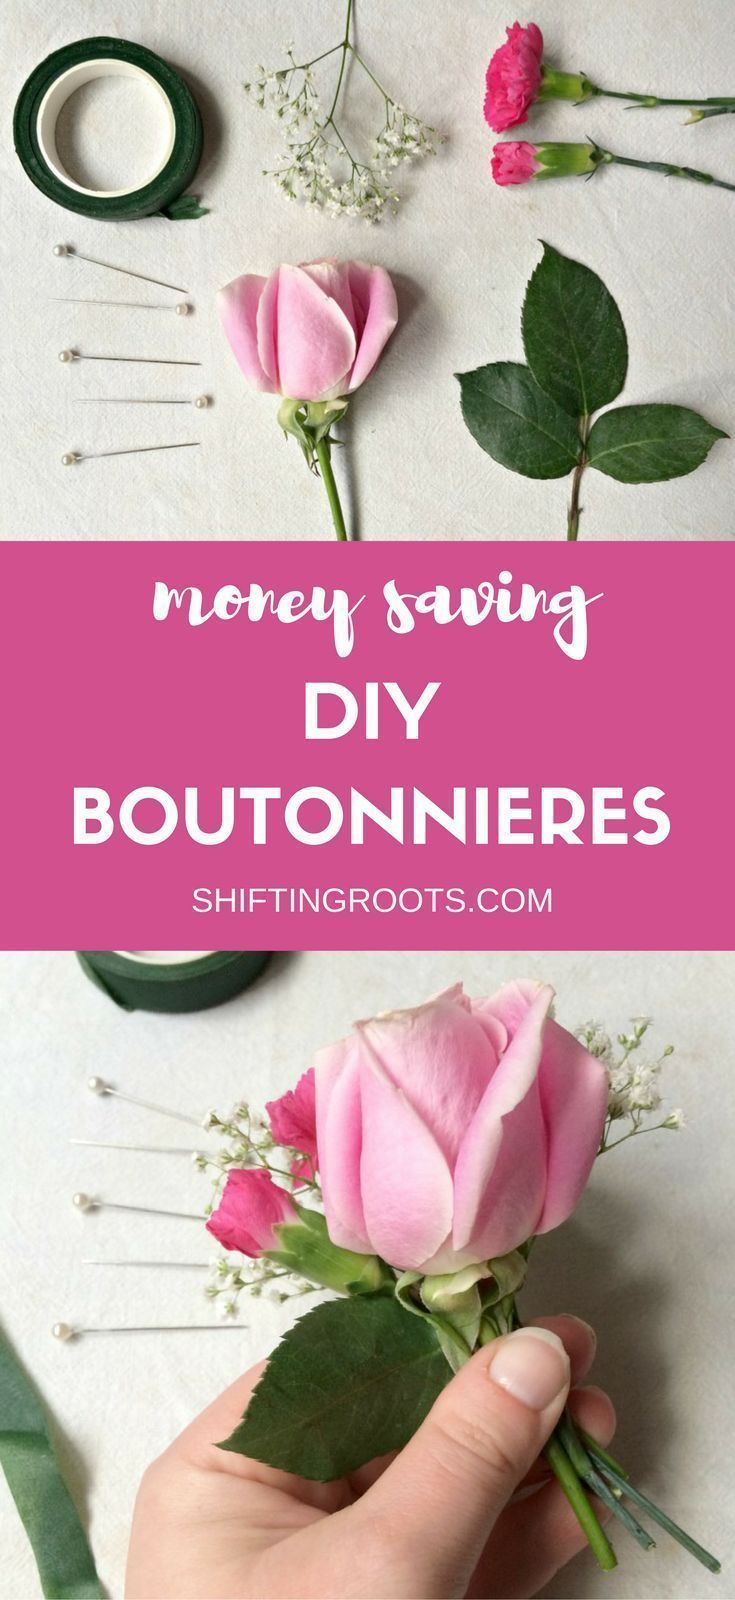 Save Money and Make Your Own Boutonnieres | Diy boutonniere, Hair ...